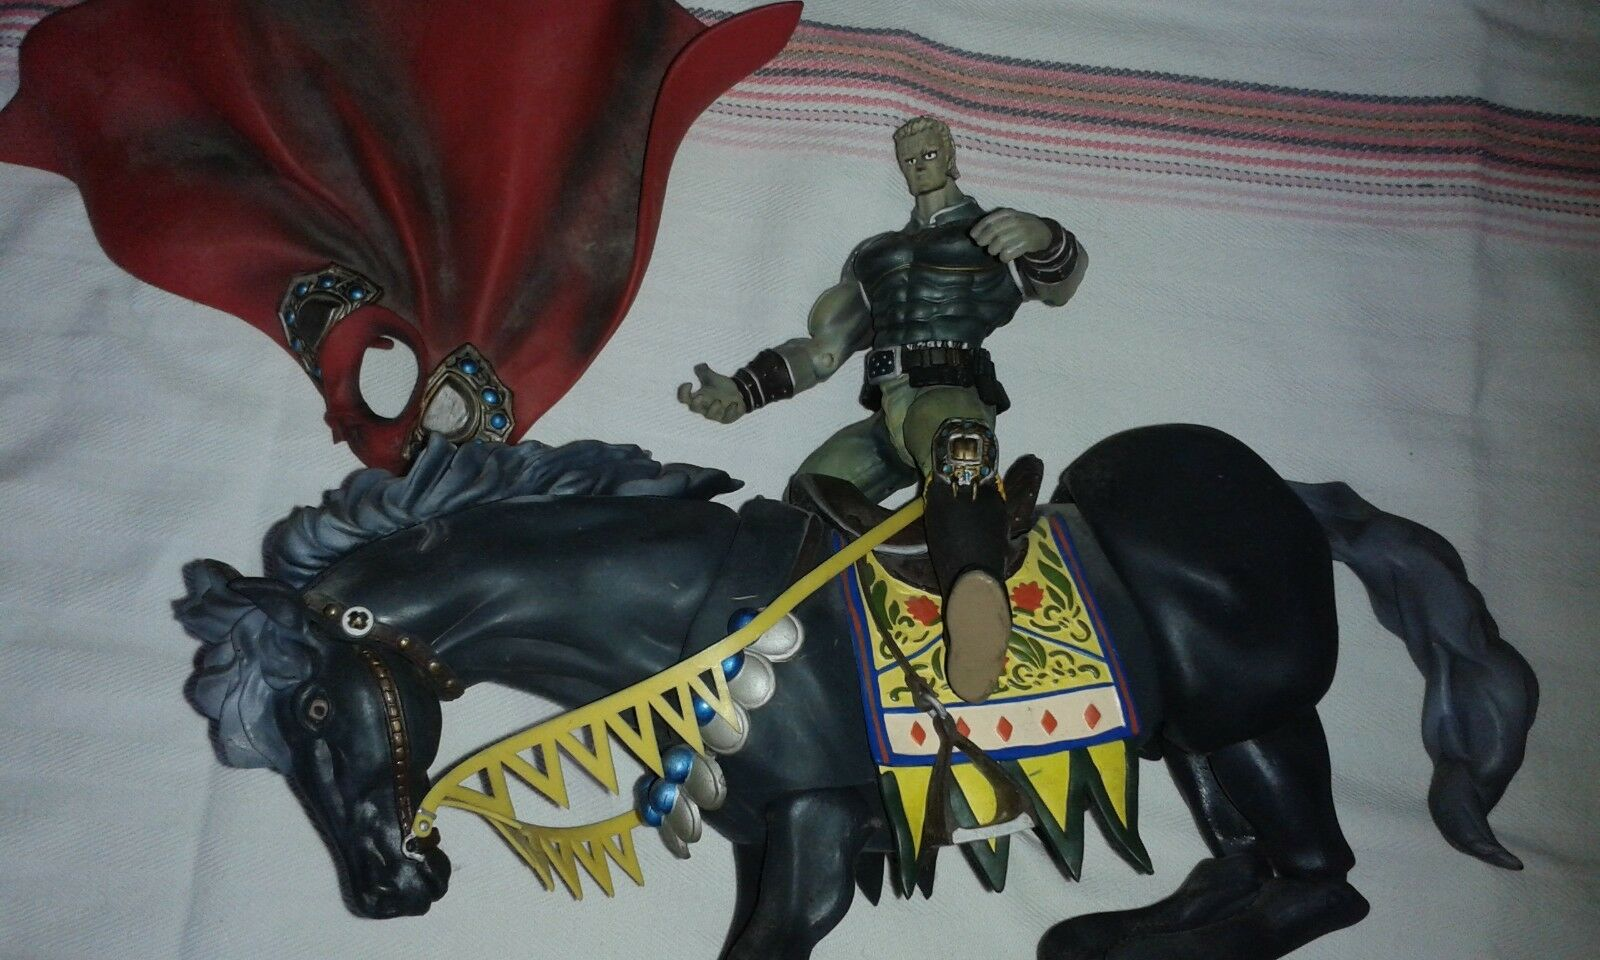 HOKUTO NO KEN SHIRO IL GUERRIERO LE SURVIVANT FIST OF THE NORTH Estrella Figura RAUL